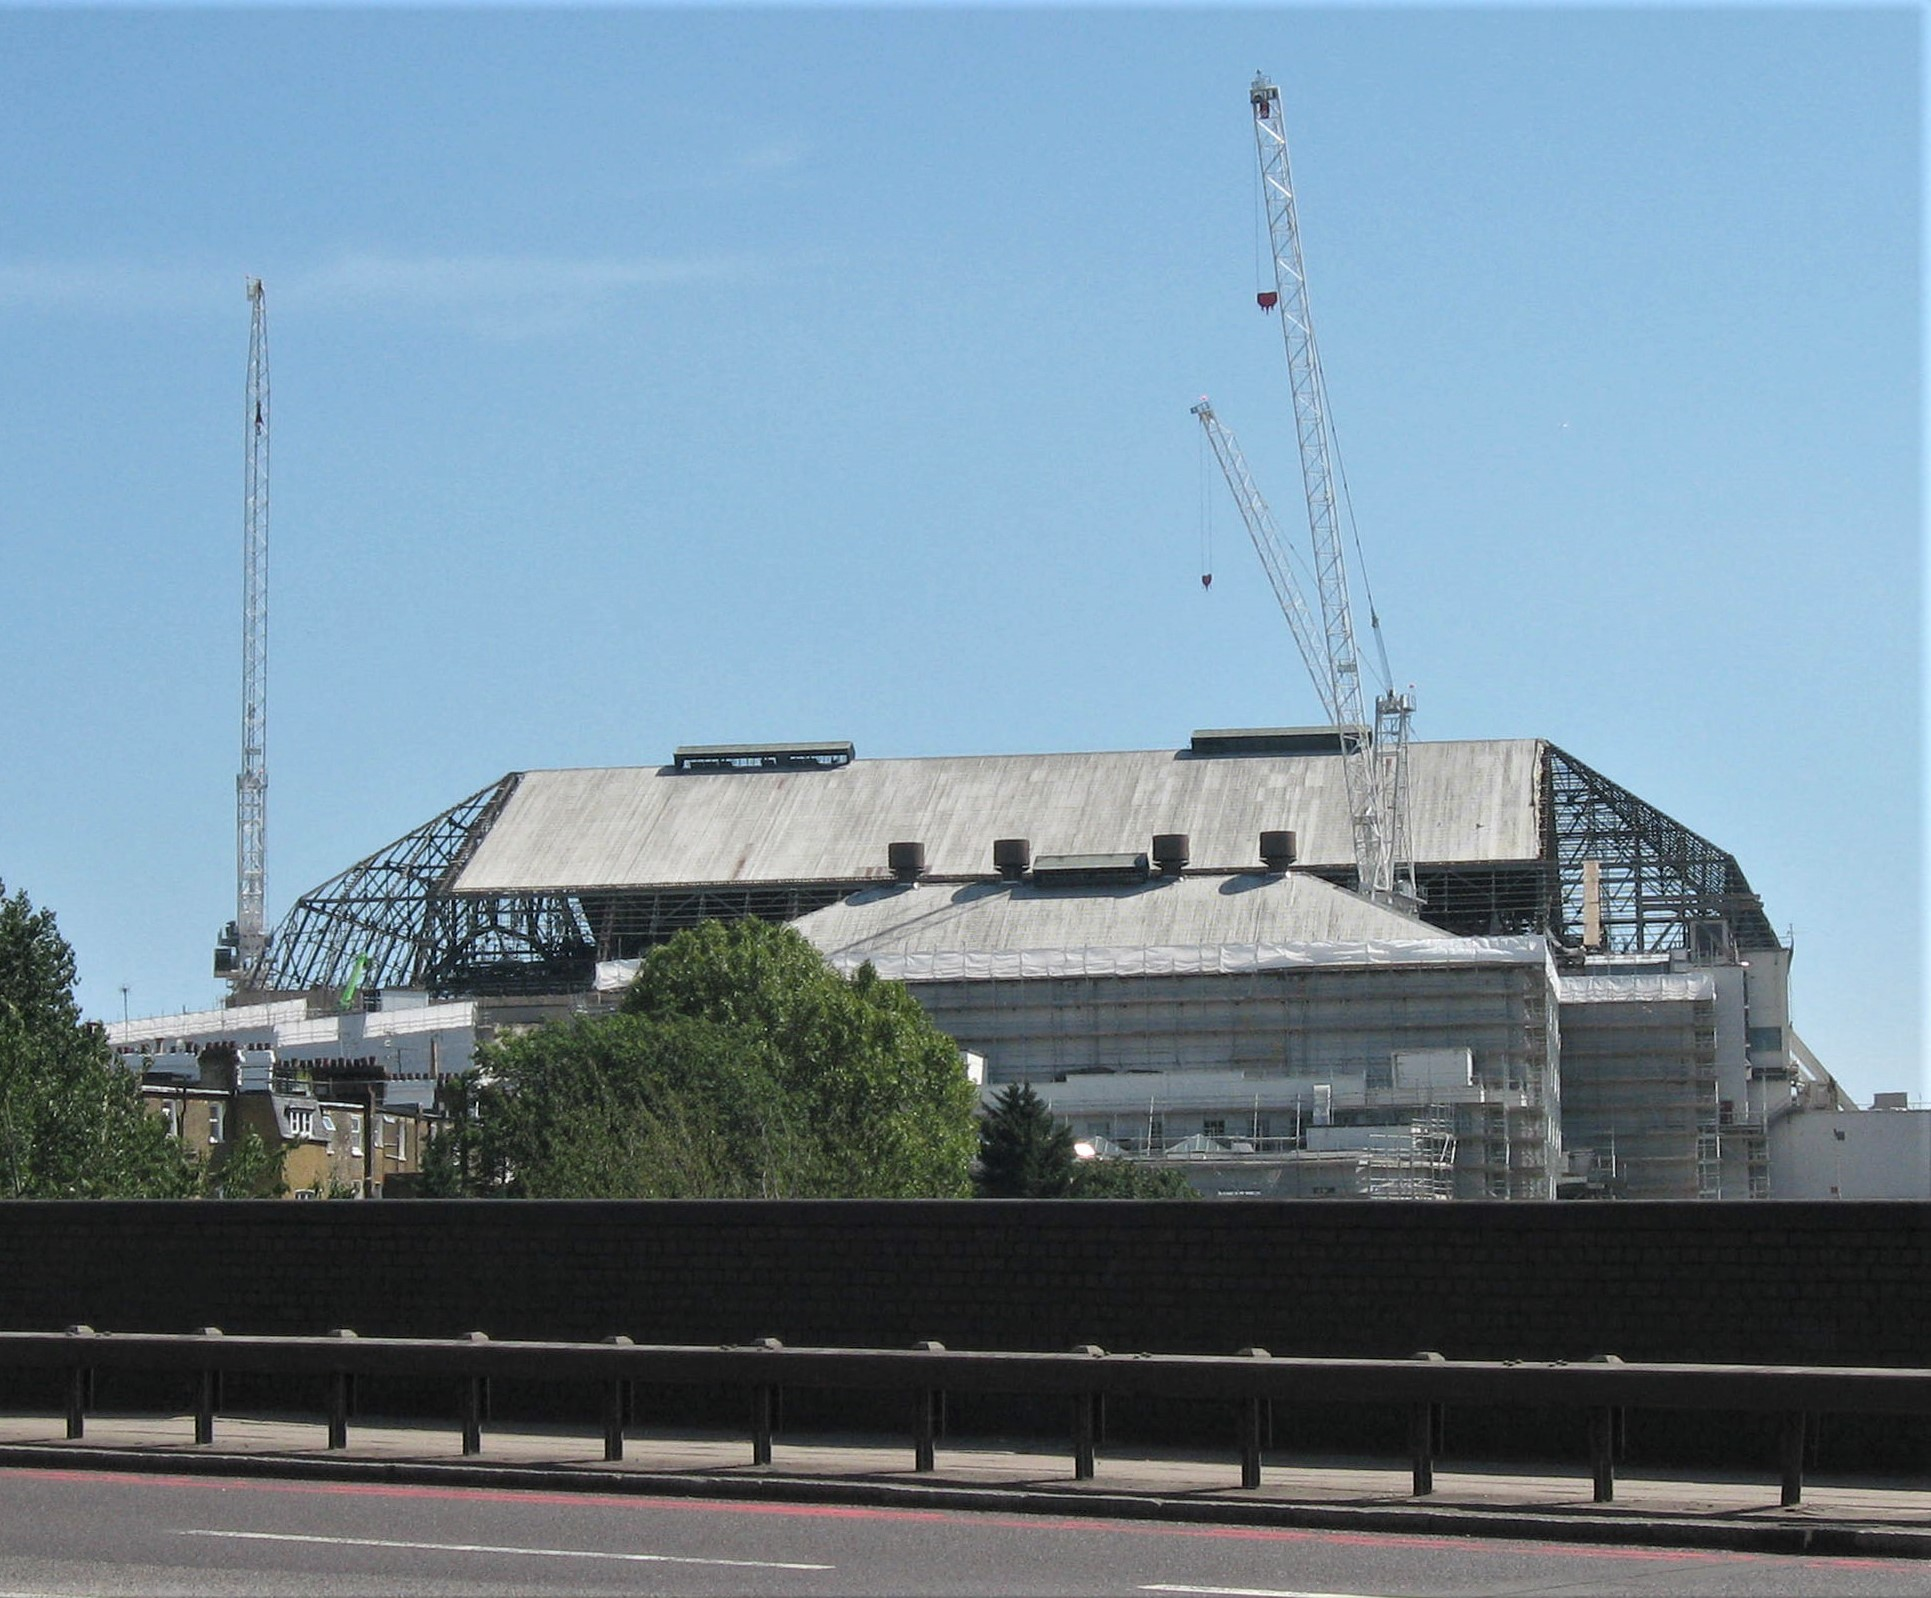 Earl's Court 1 Demolition in progress, August 2015 with roof sheeting partially removed to expose steel roof structure